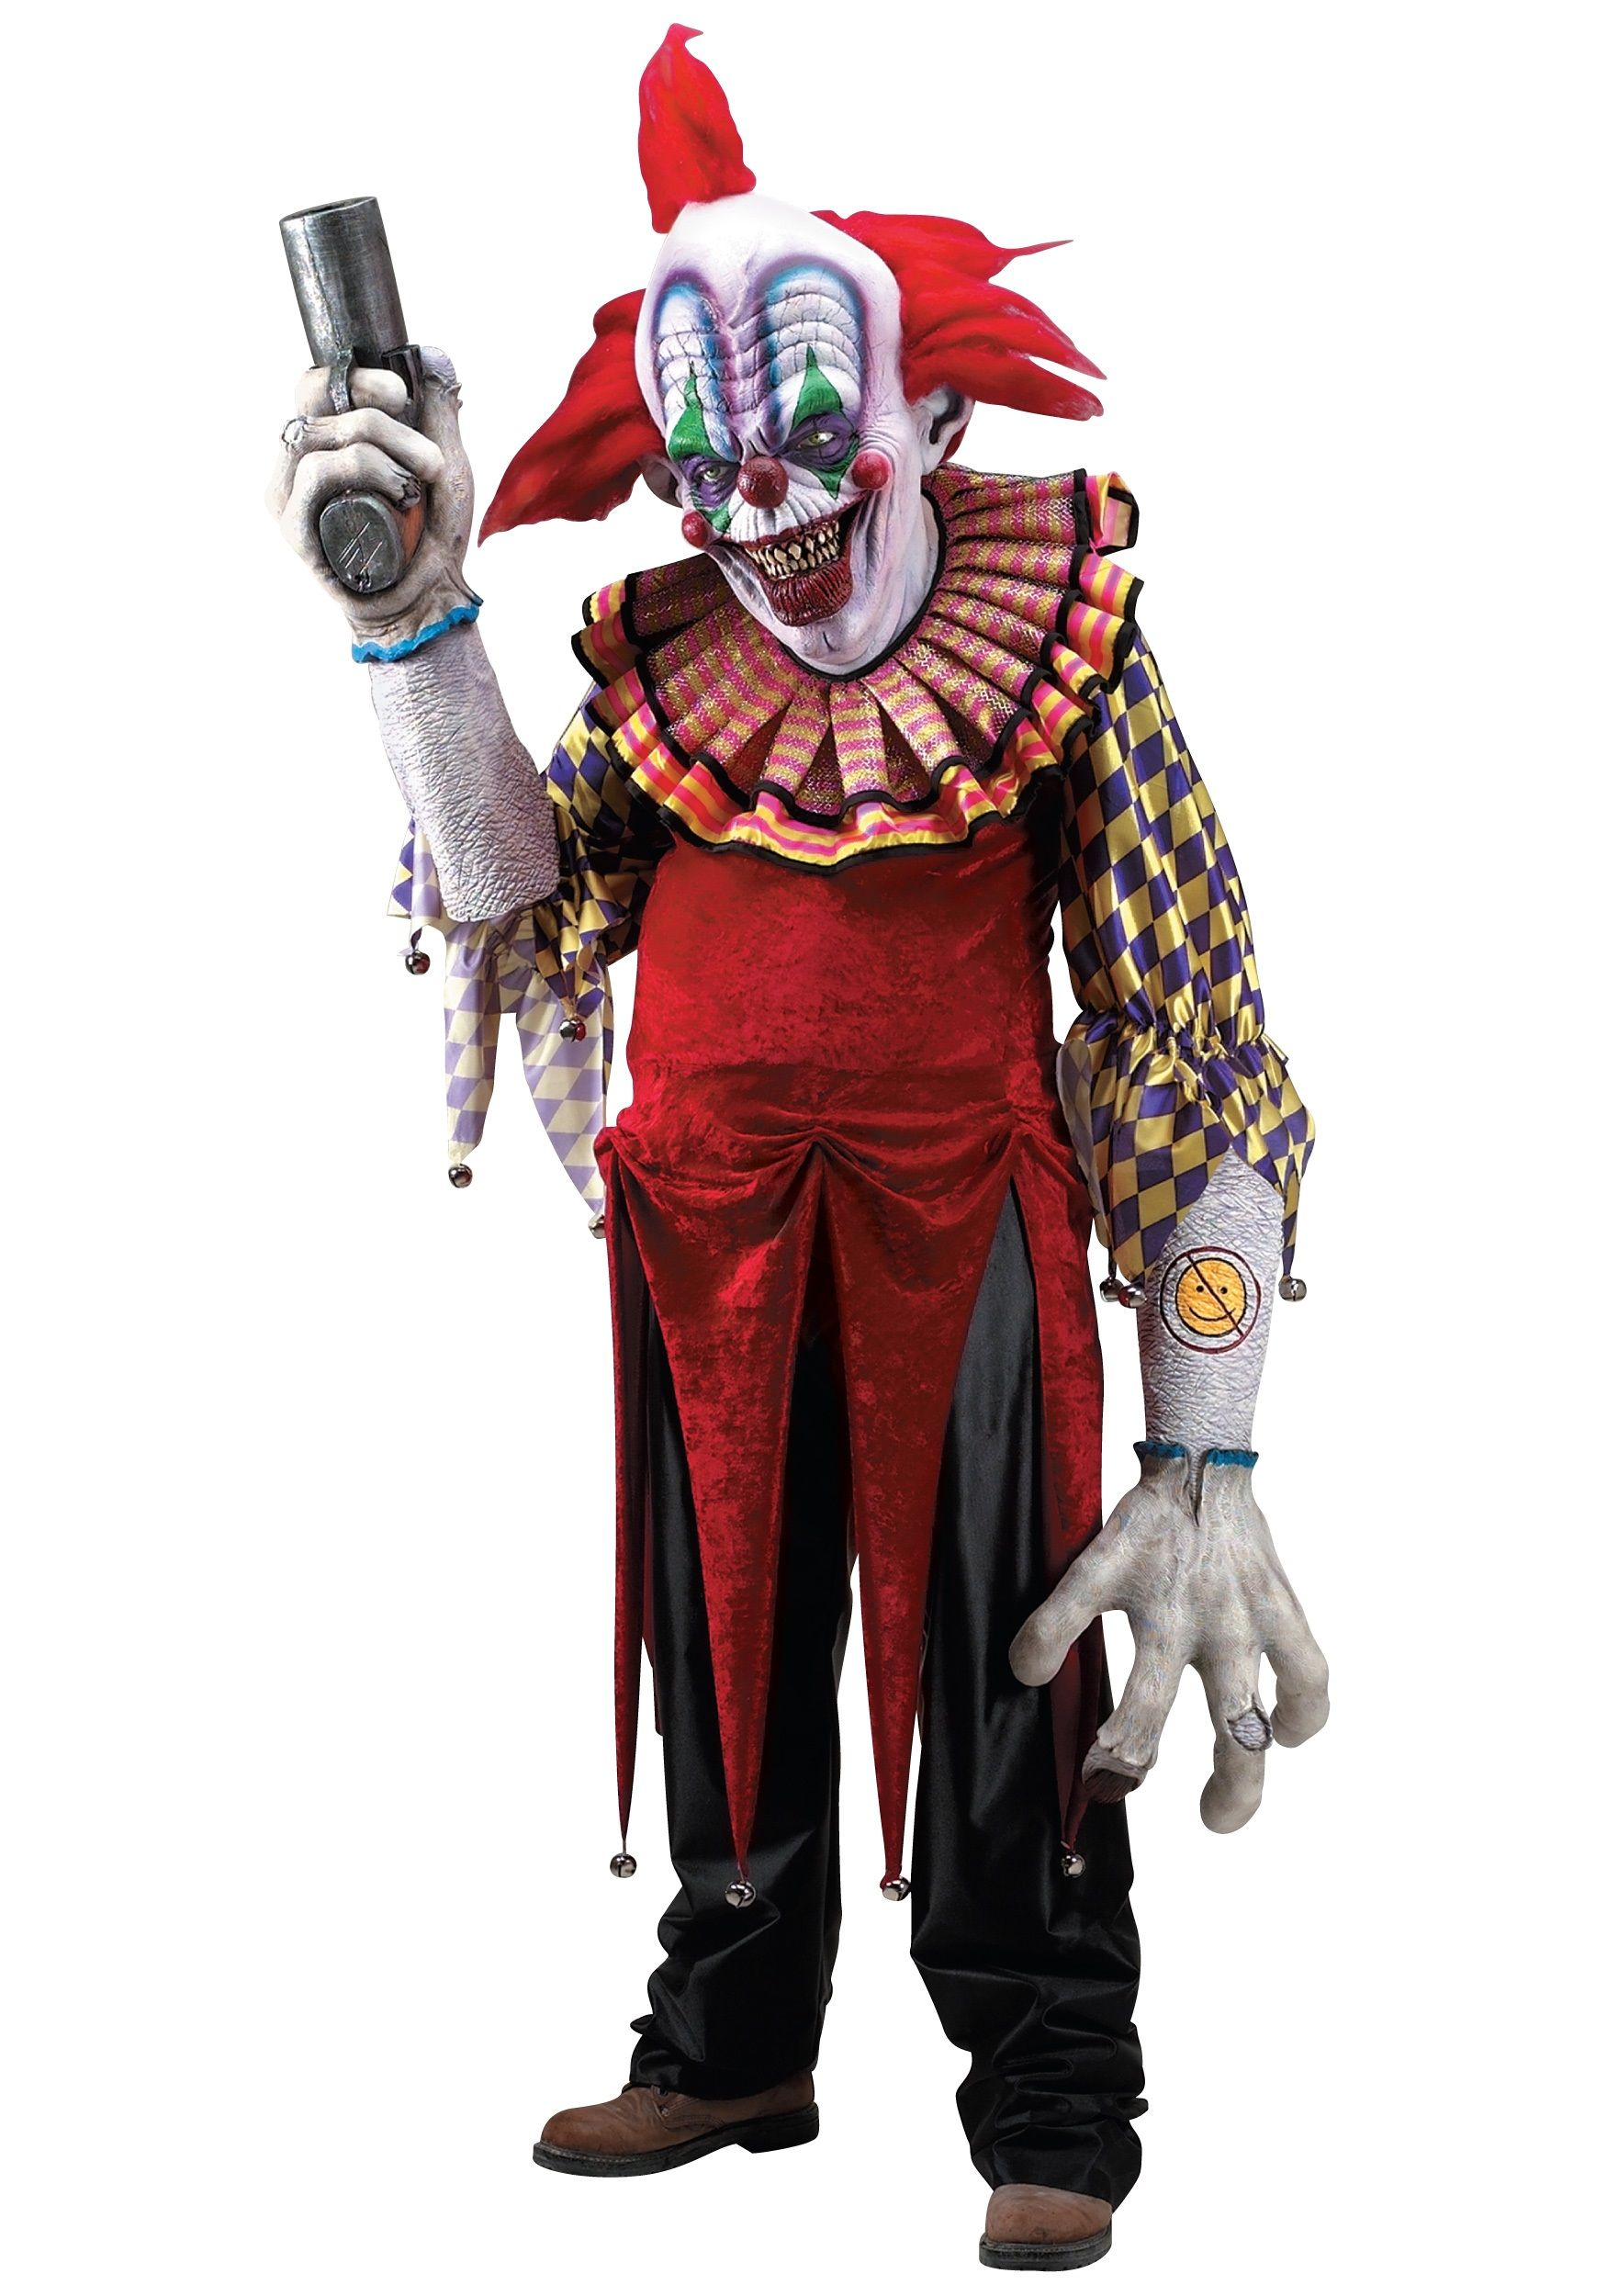 Giggles the Clown Creature Reacher Costume | Costumes, Scary ...